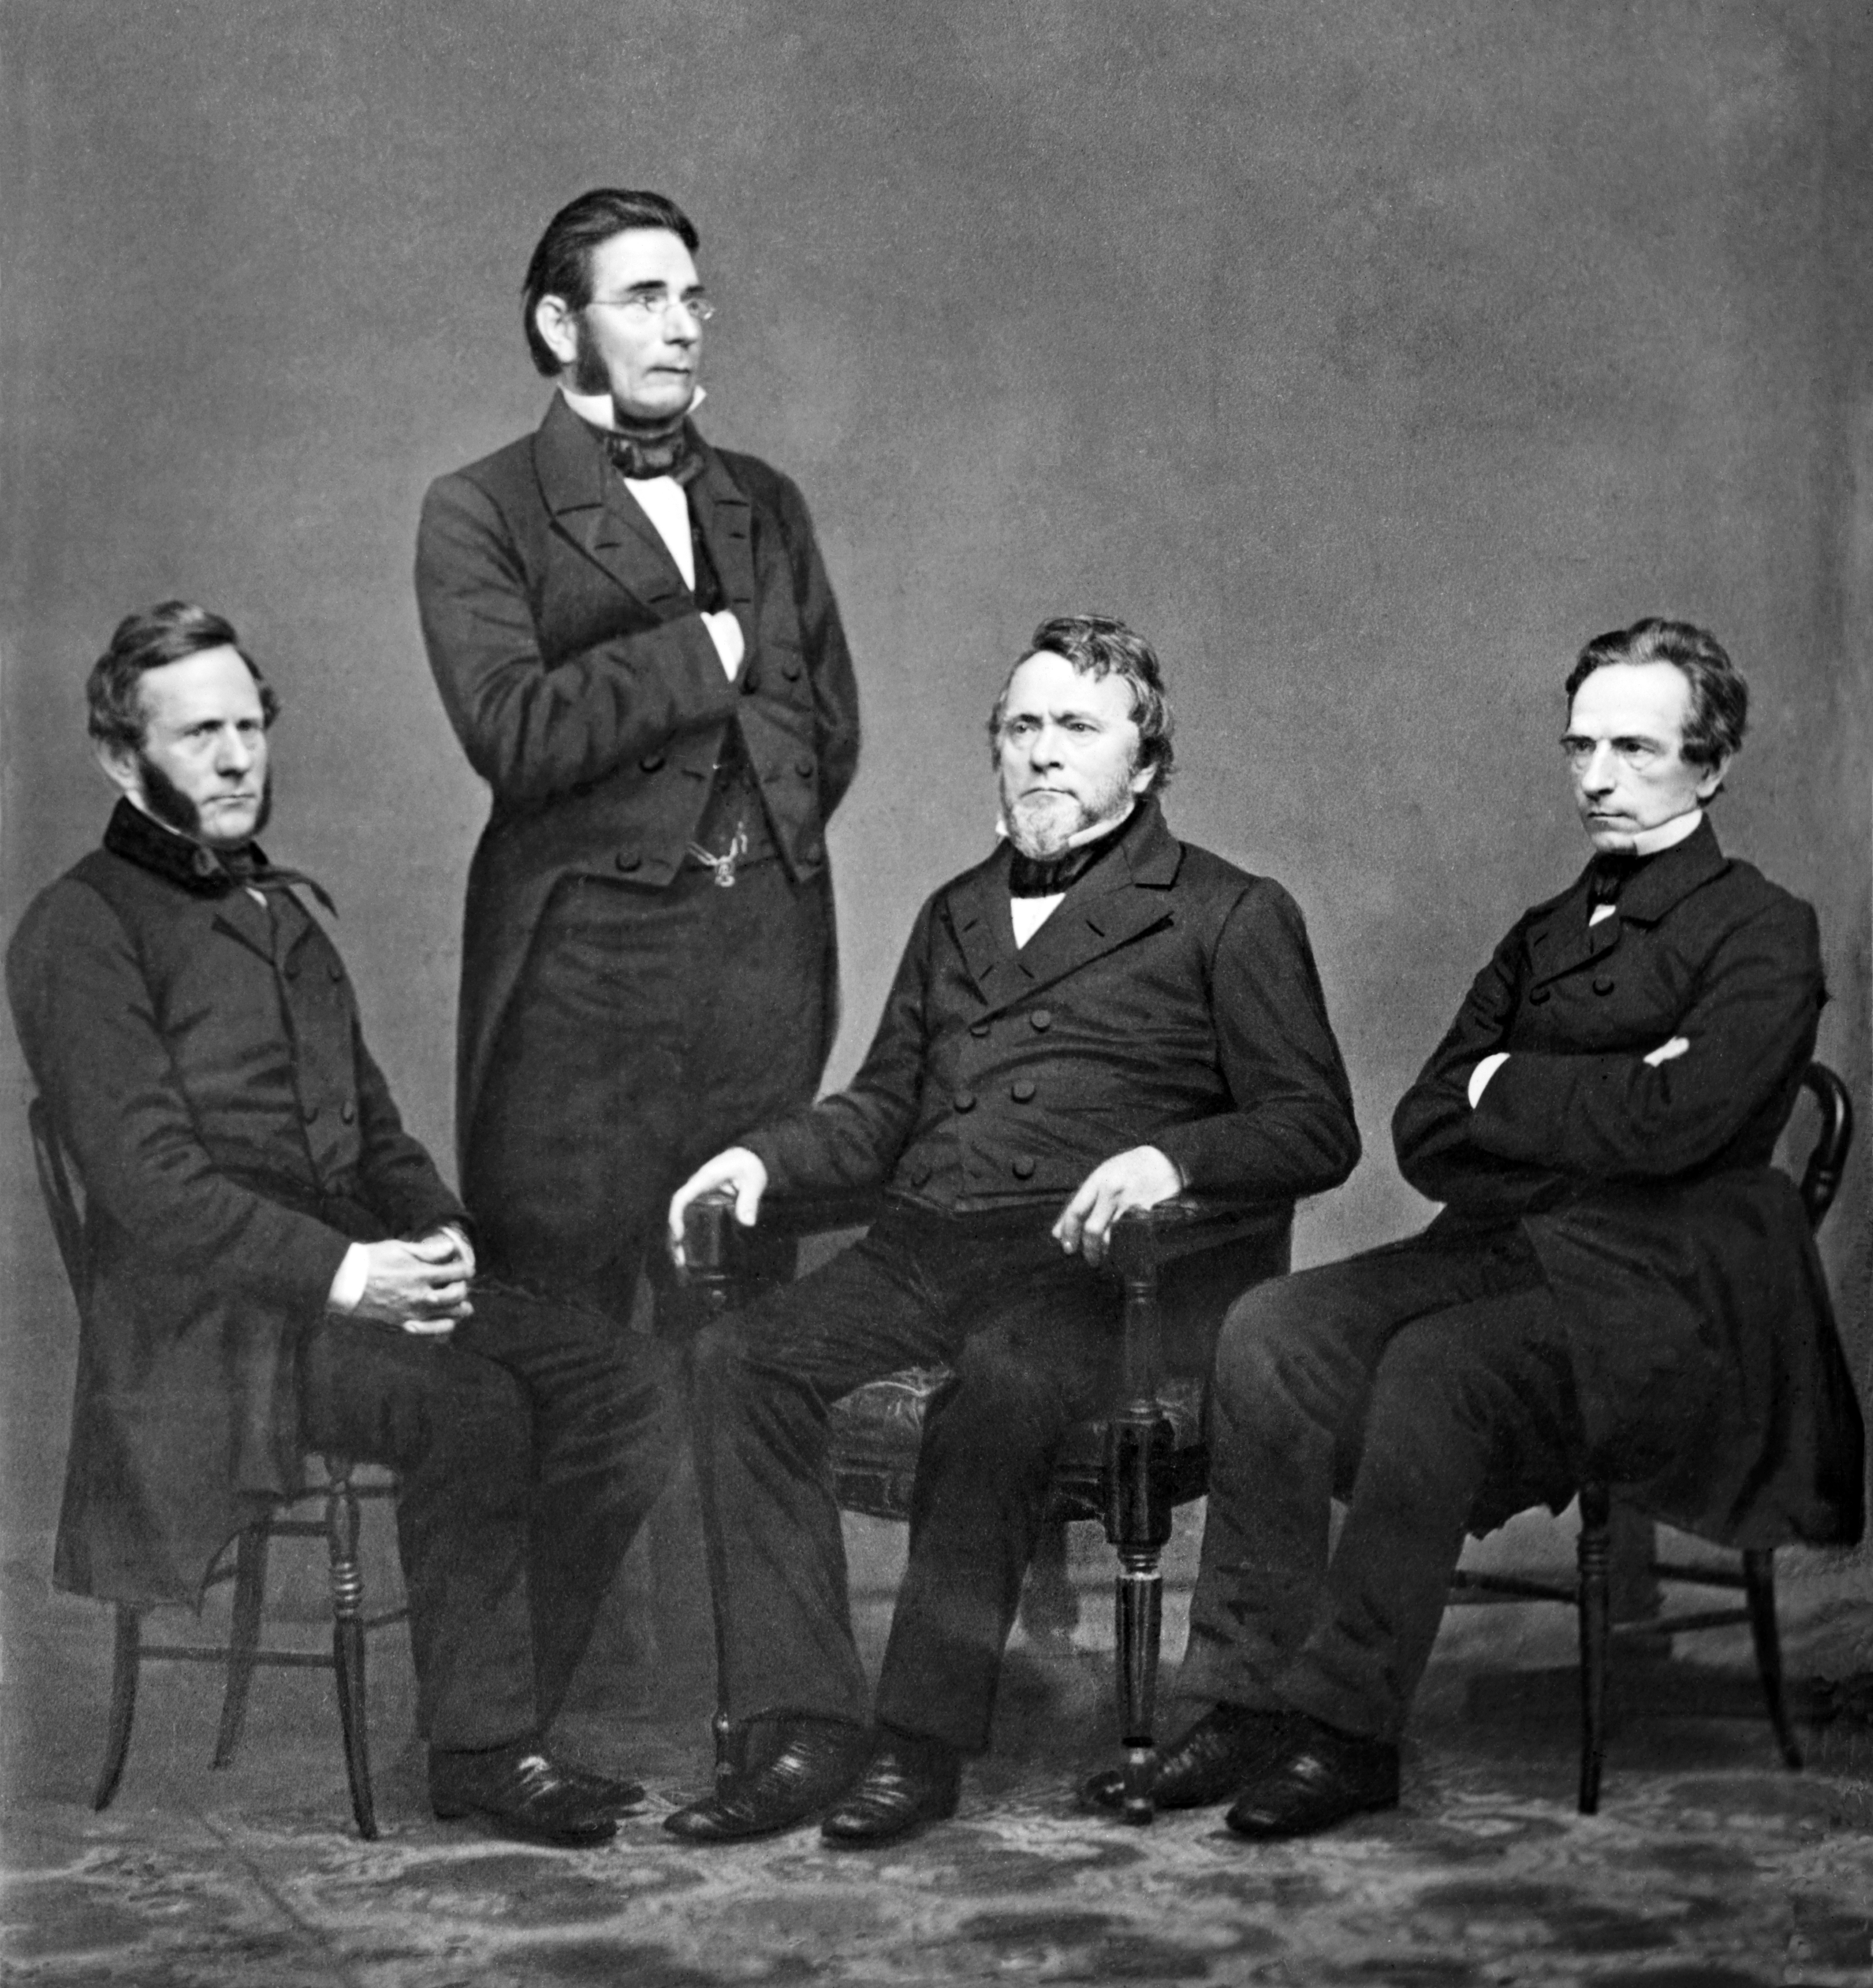 Group portrait of the four Harper brothers by [[Mathew Brady]], c. 1860.  Left to right: Fletcher, James, John, and Joseph